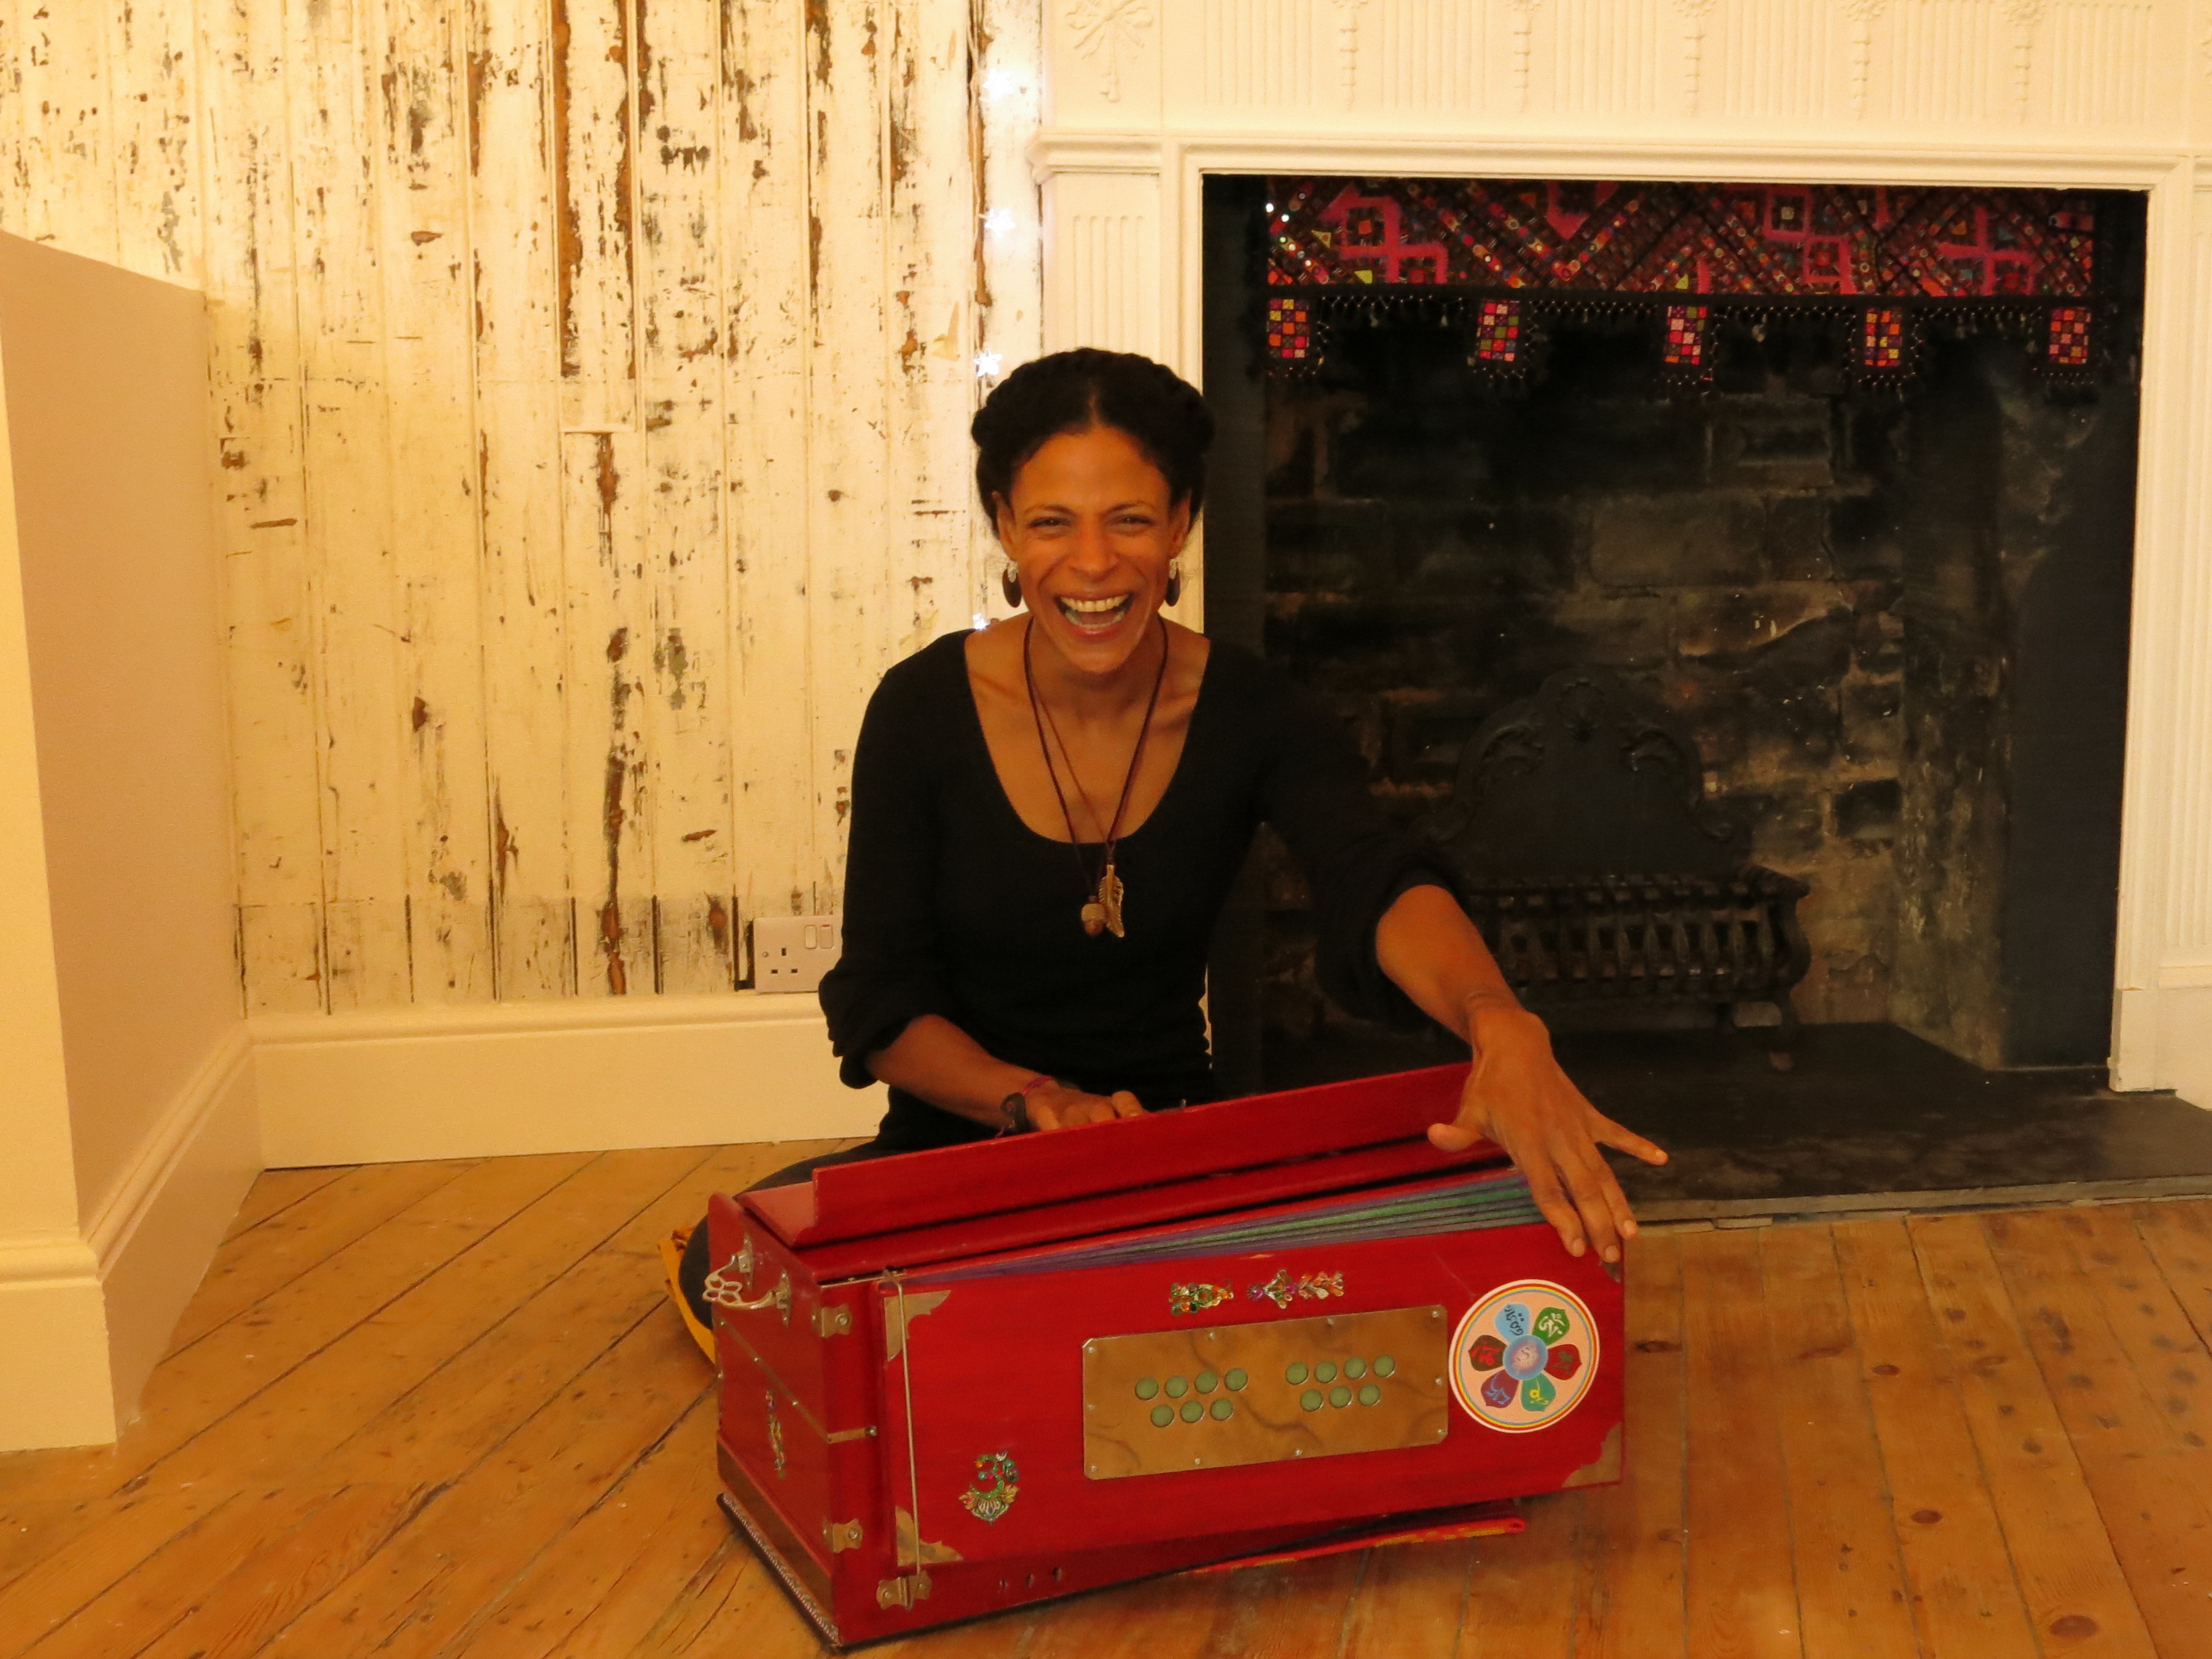 Evelyn, Laughter and the Harmonium